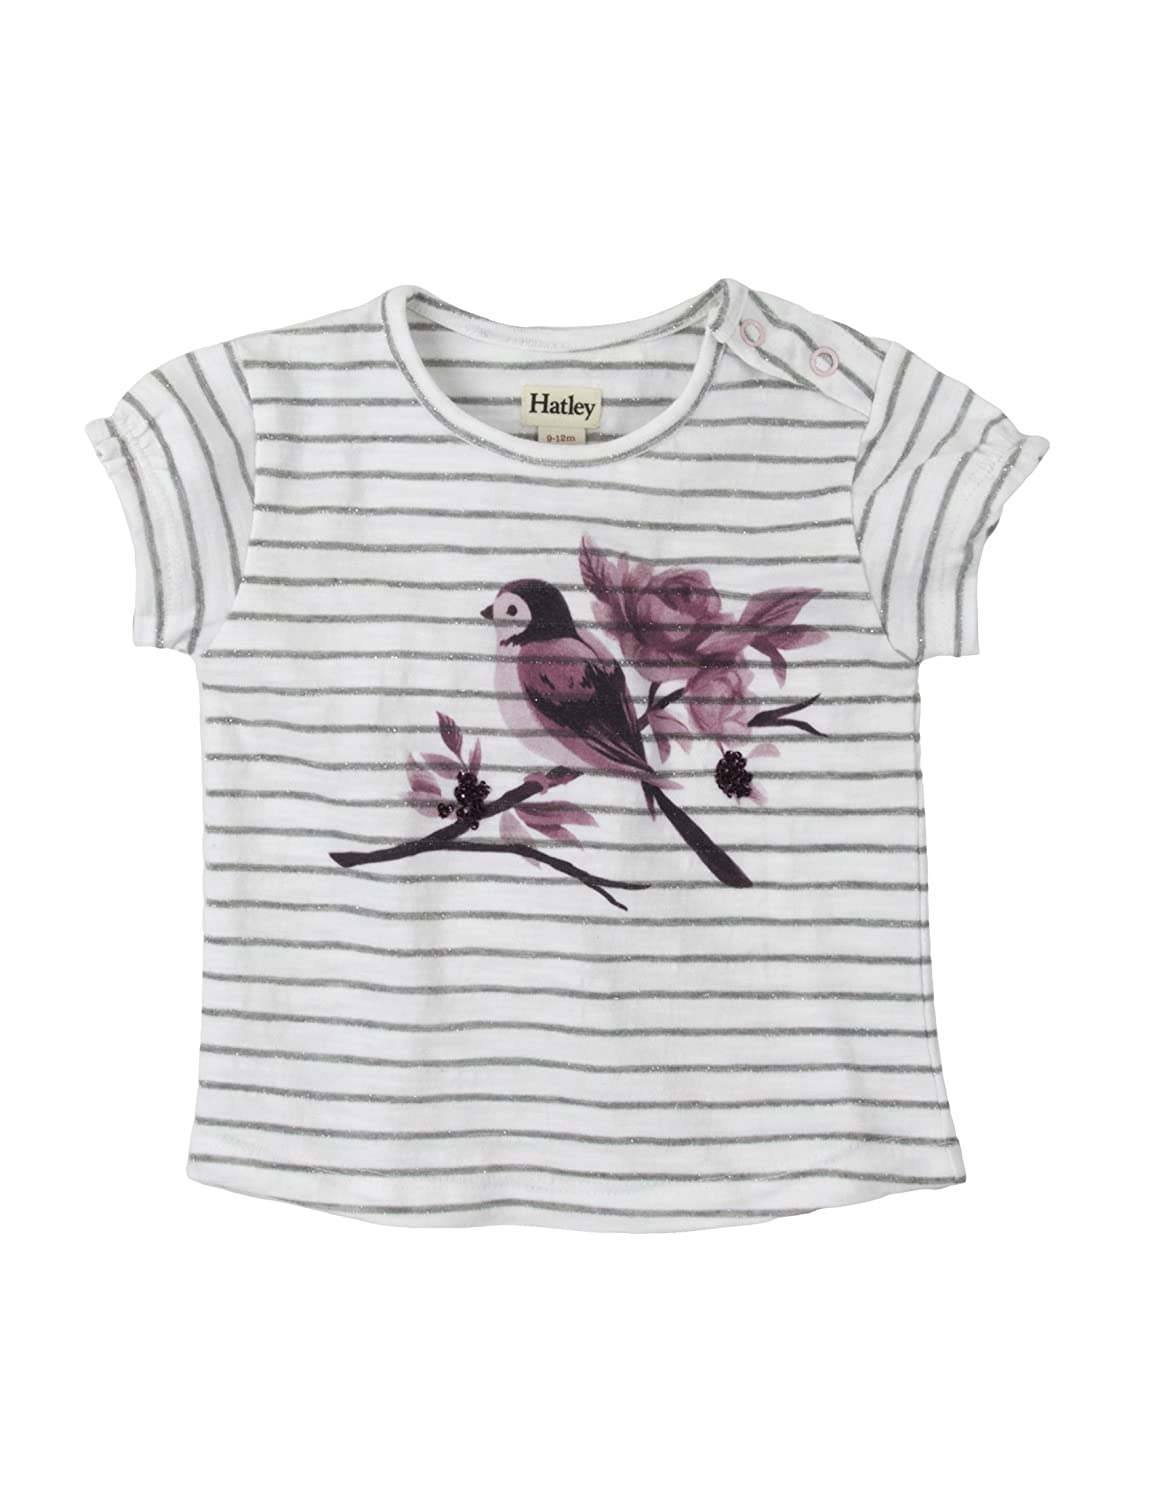 Hatley Baby Girls' Graphic Tee T-Shirt